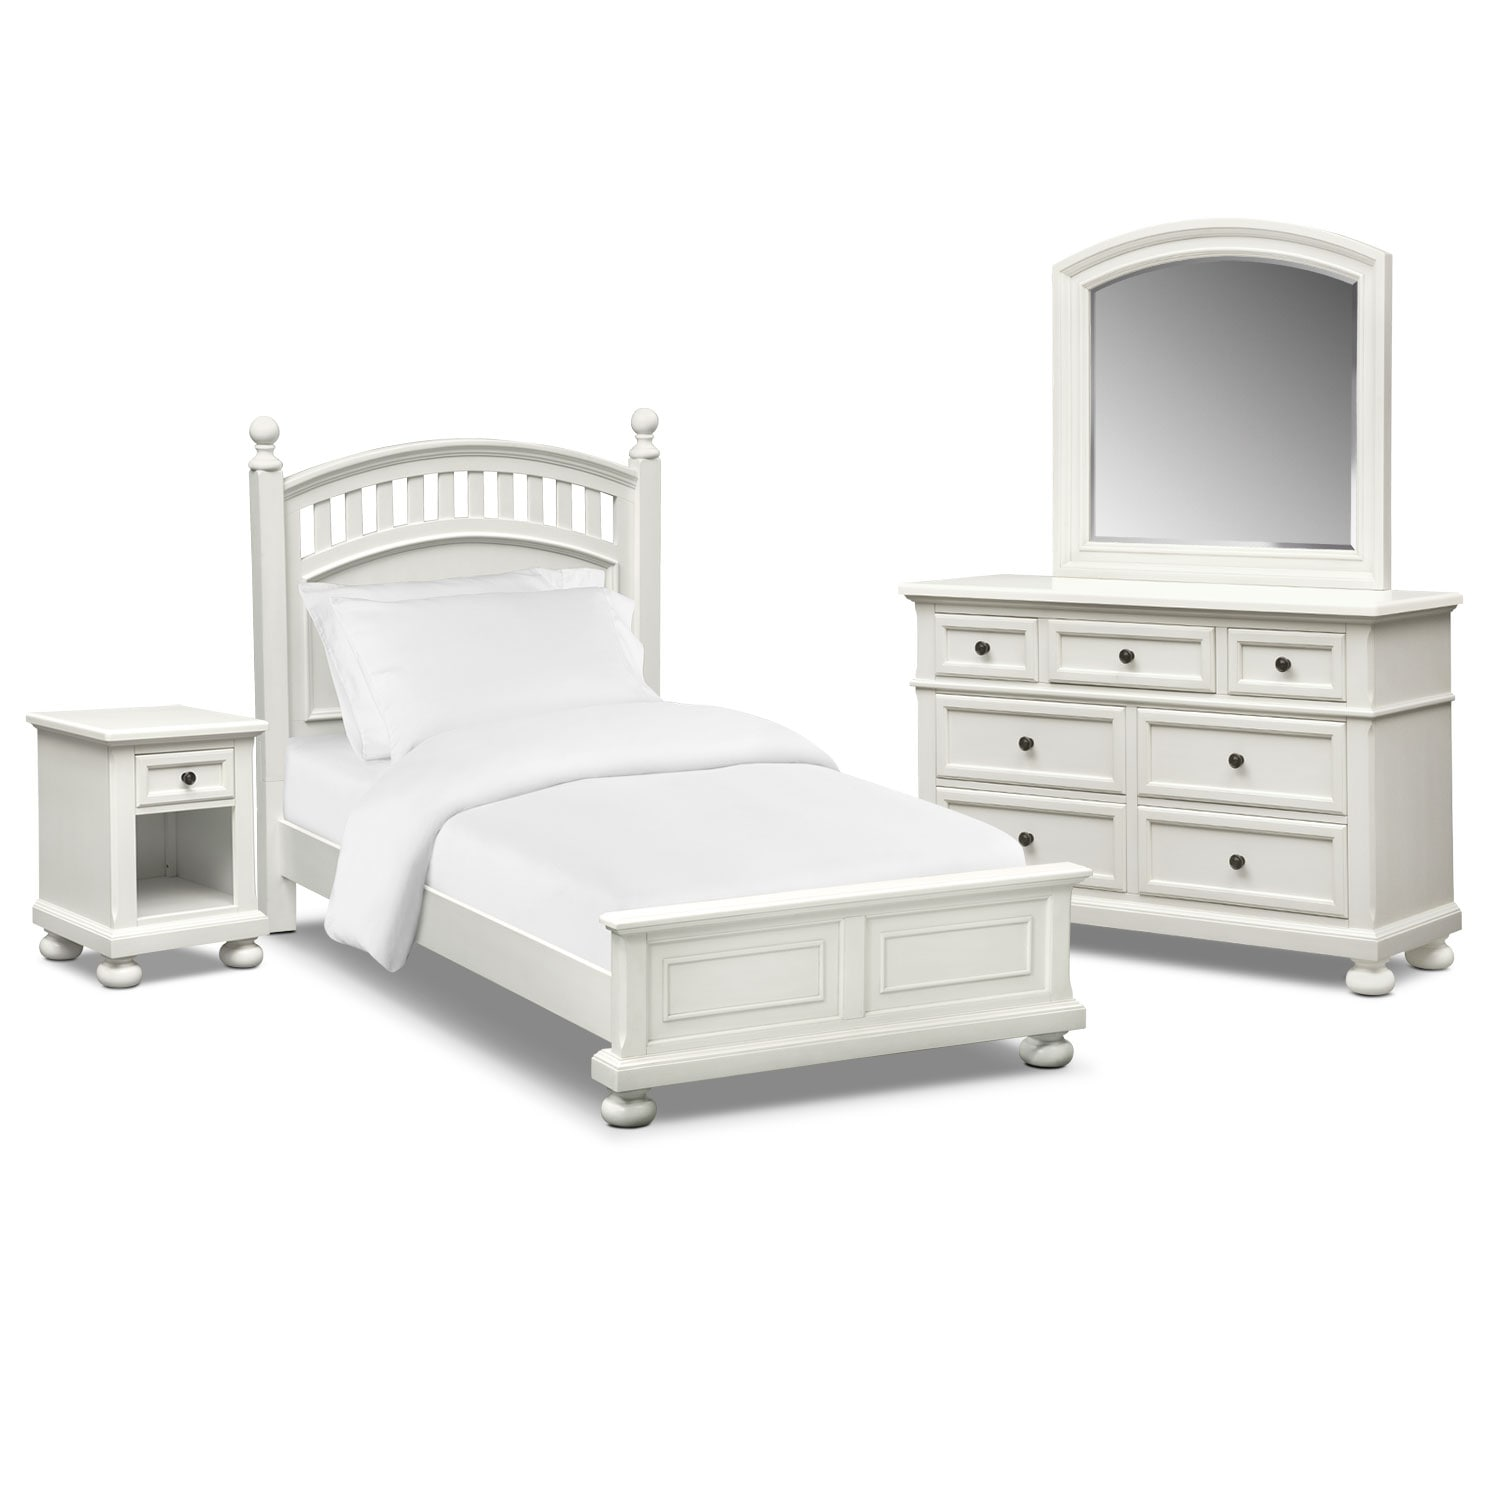 Bedroom Furniture - Hanover Youth 6-Piece Full Poster Bedroom Set - White